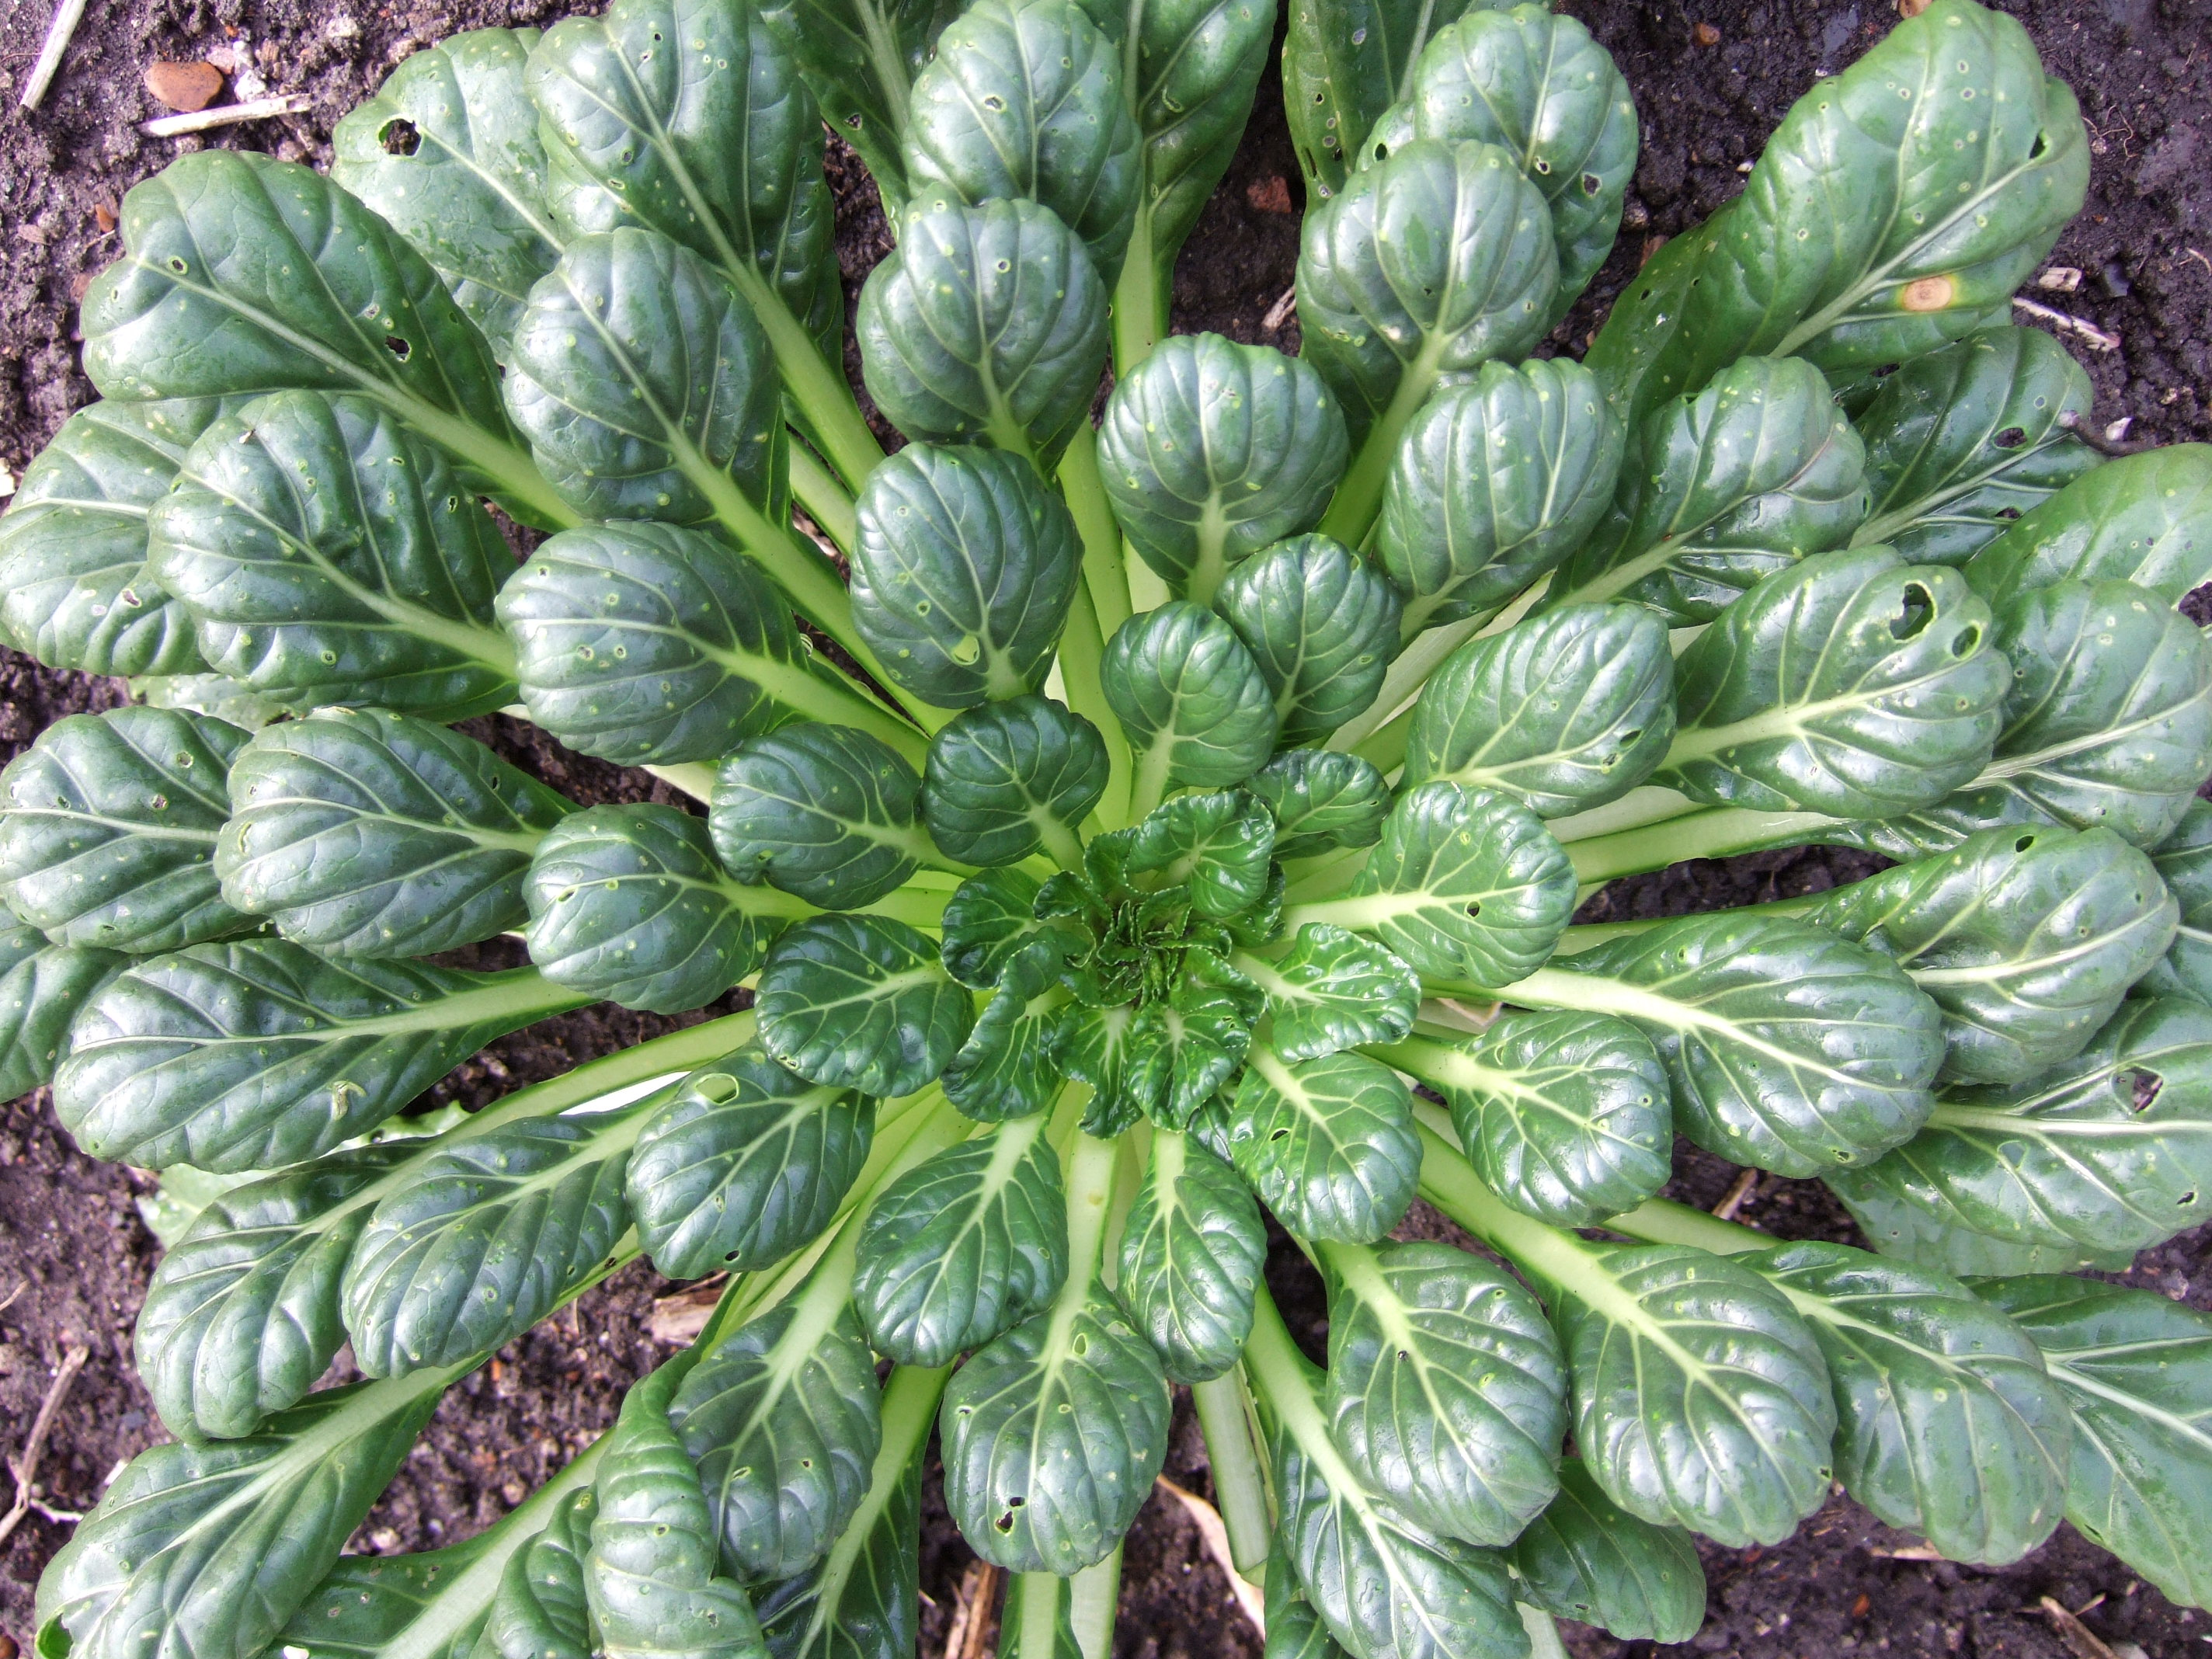 Tatsoi looking forward to harvesting lots of this over the summer